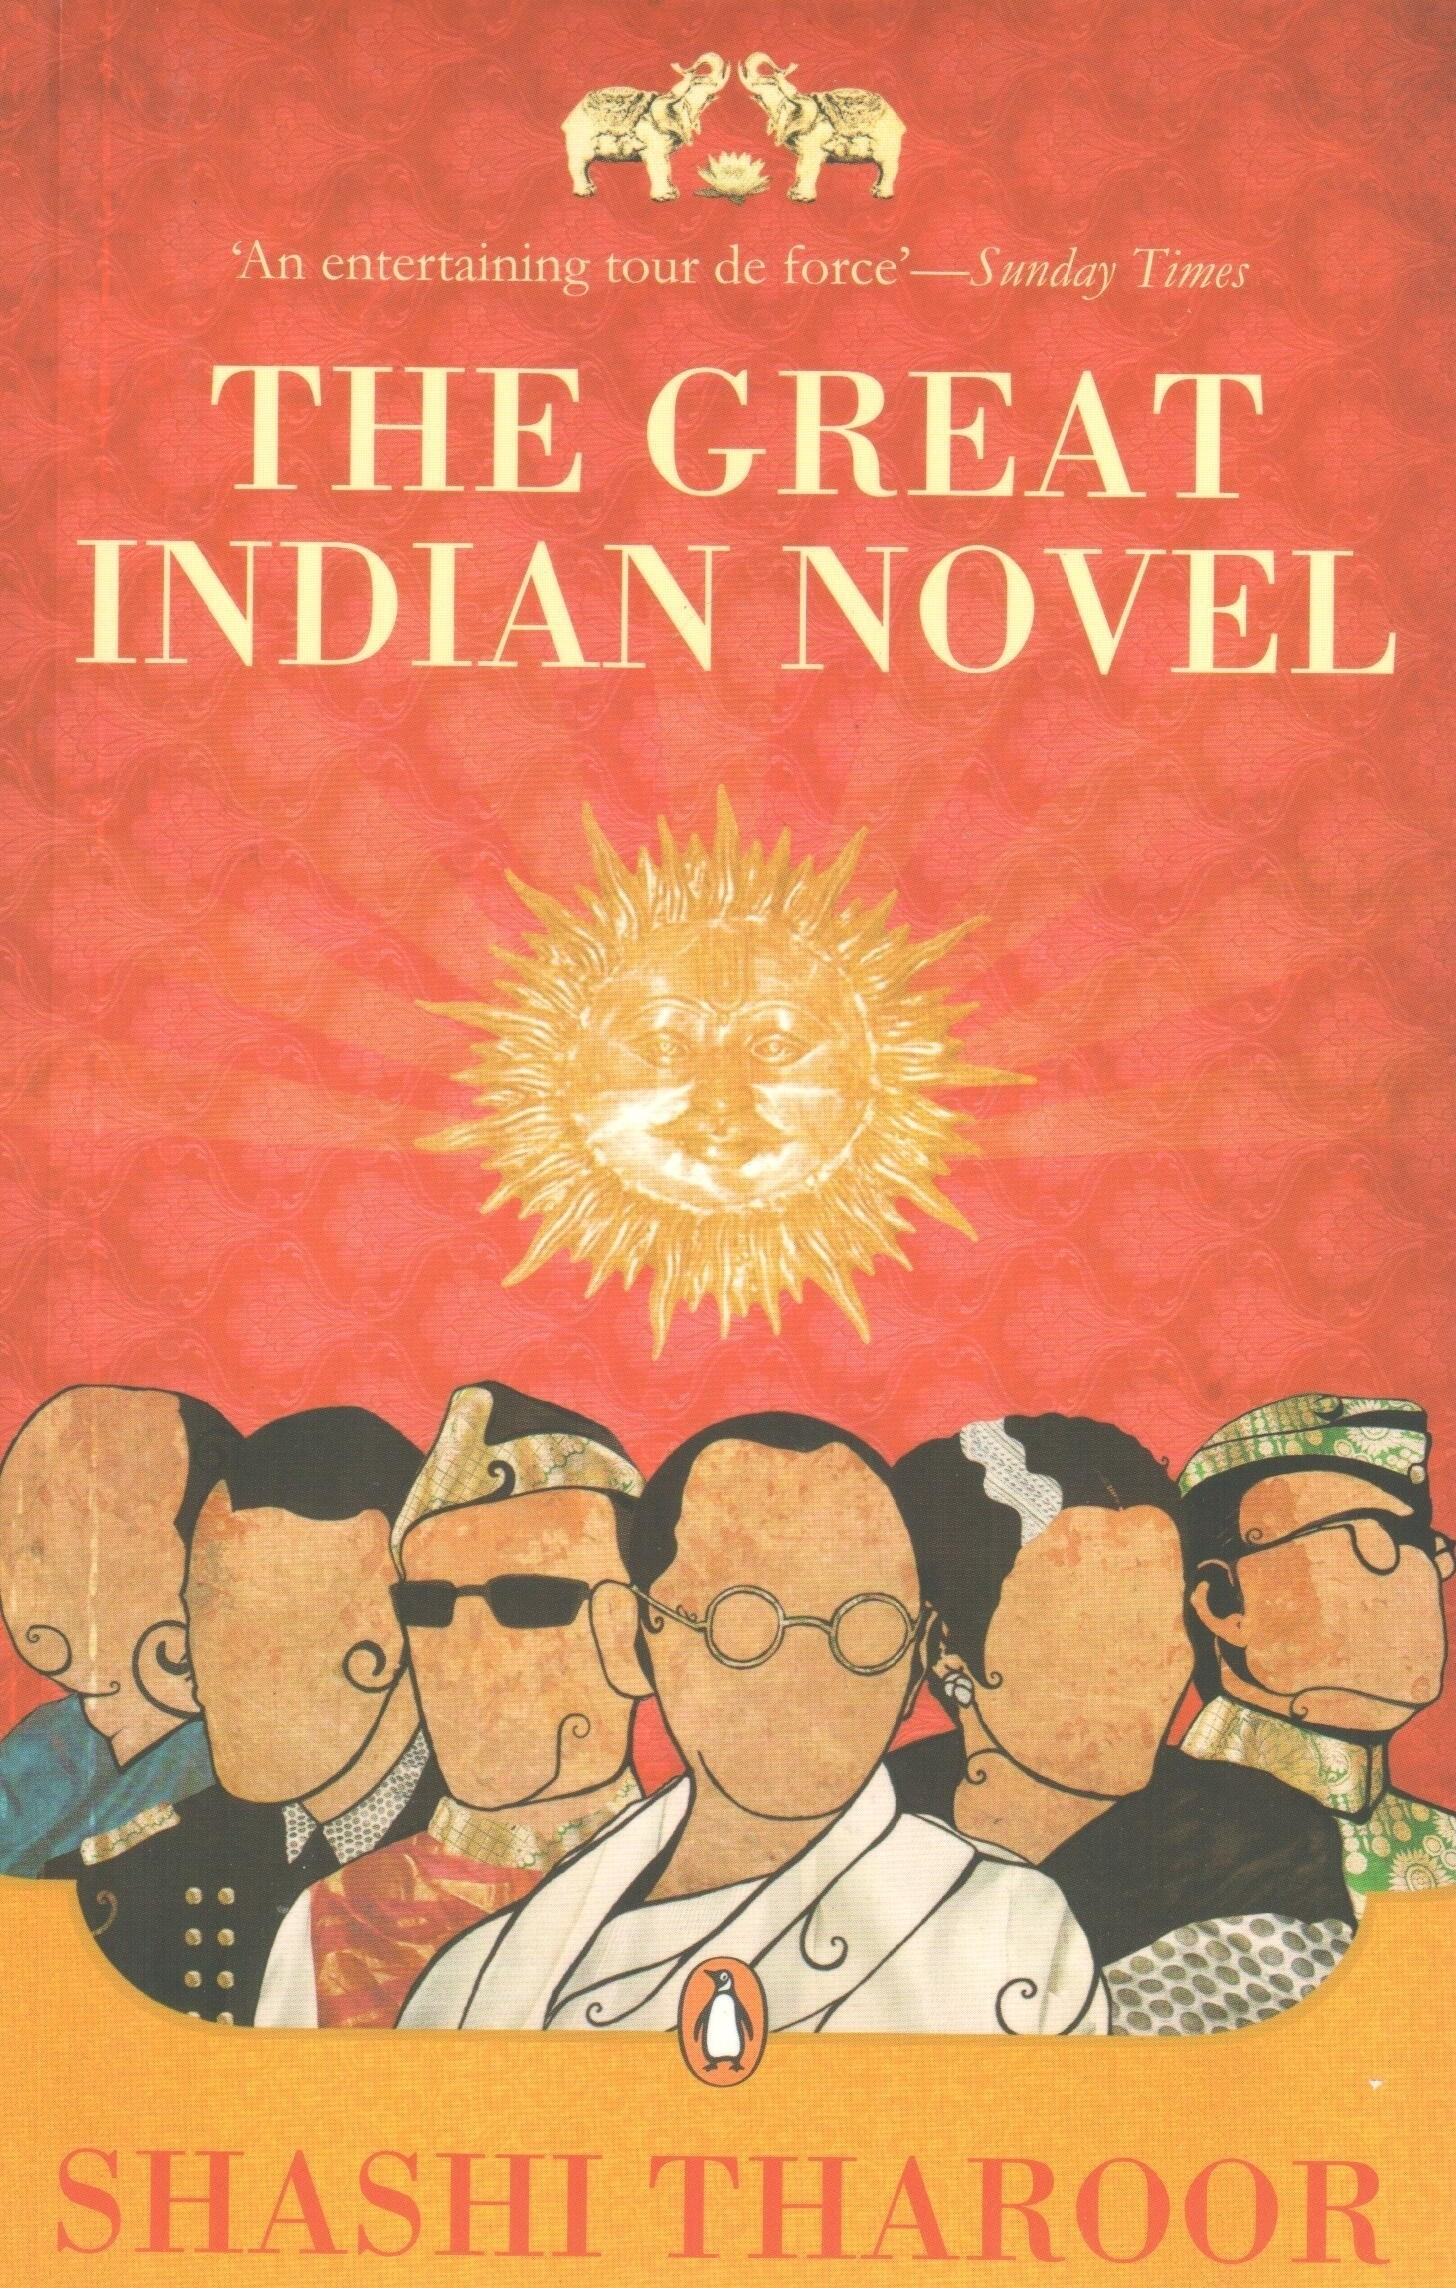 the-great-indian-novel-original-imadhxkvzpqcg6kv